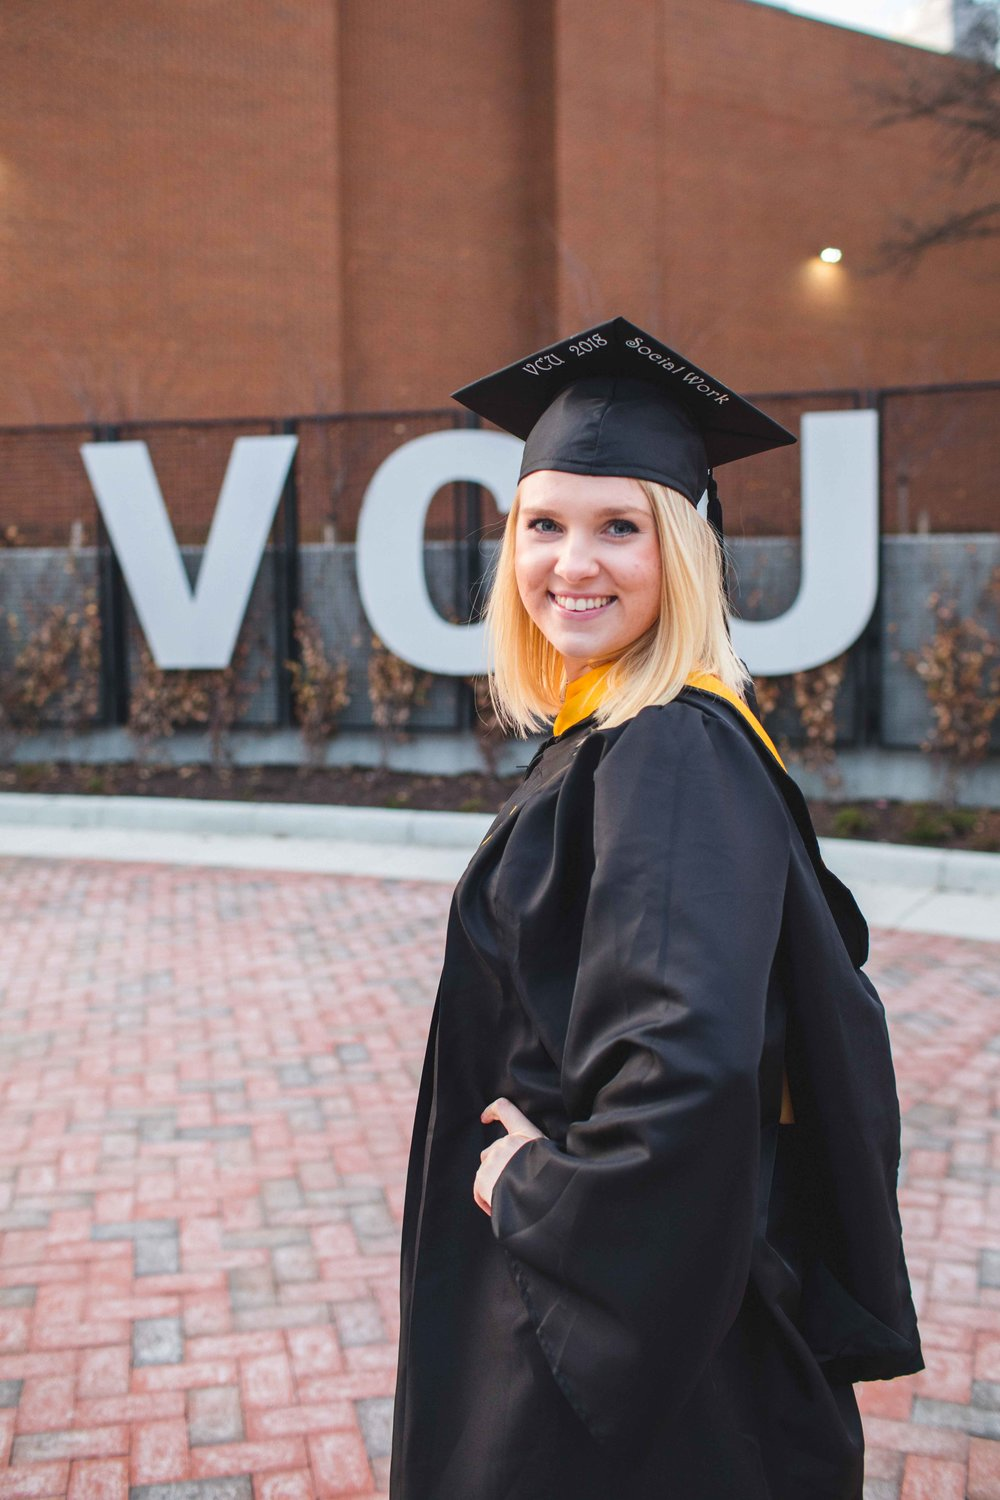 maymont-richmond-senior-portraits-vcu-graduation-richmond-wedding-photographer-22.jpg